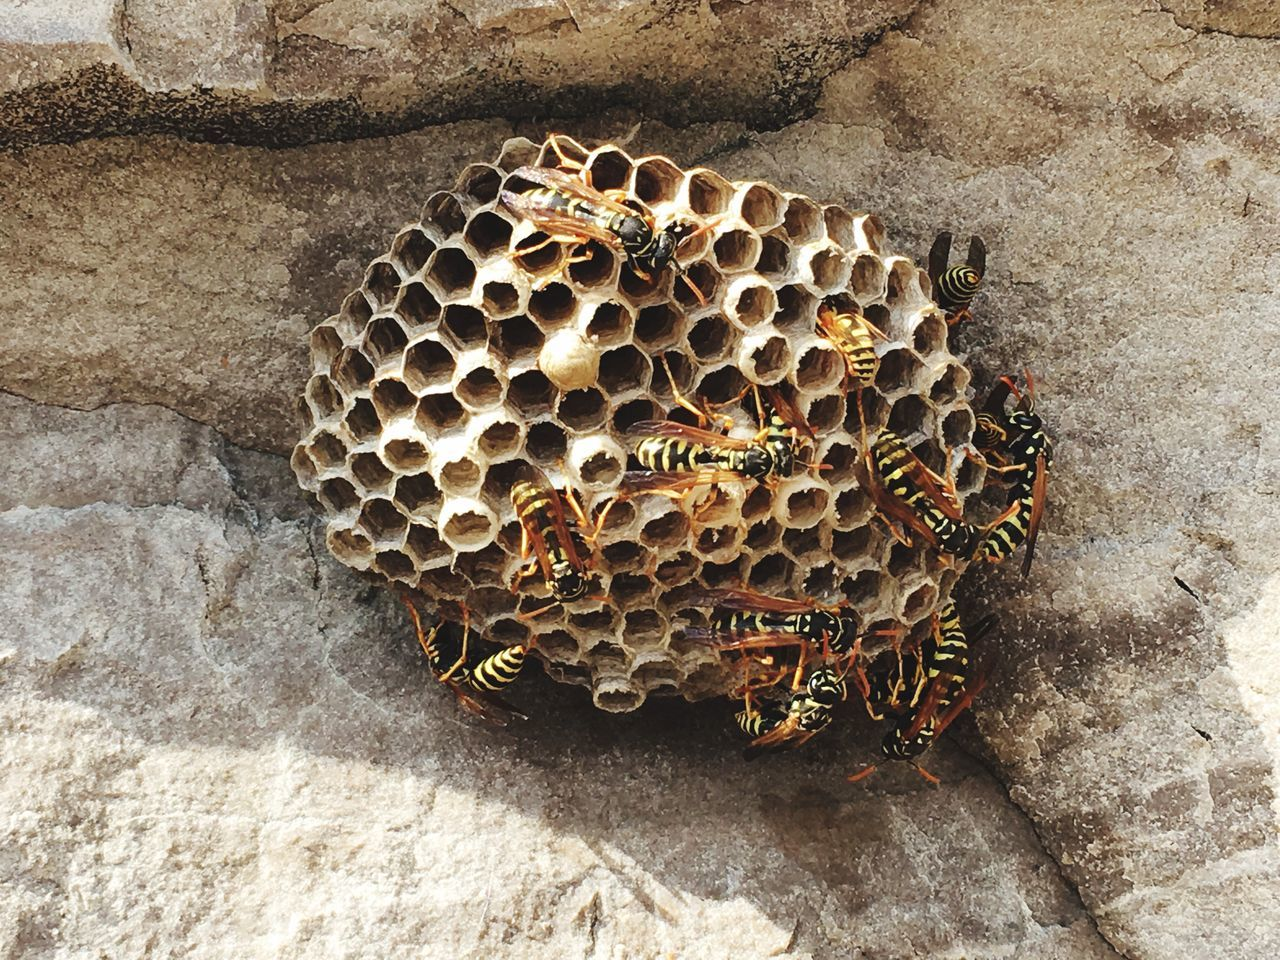 Wasp nest Wasp Wasp At Work Wasps Nest Wasp Nest Wasps Nature World Of Nature Insects  Stinger Animal Black And Yellow  Insect Rock Nest Hive Life